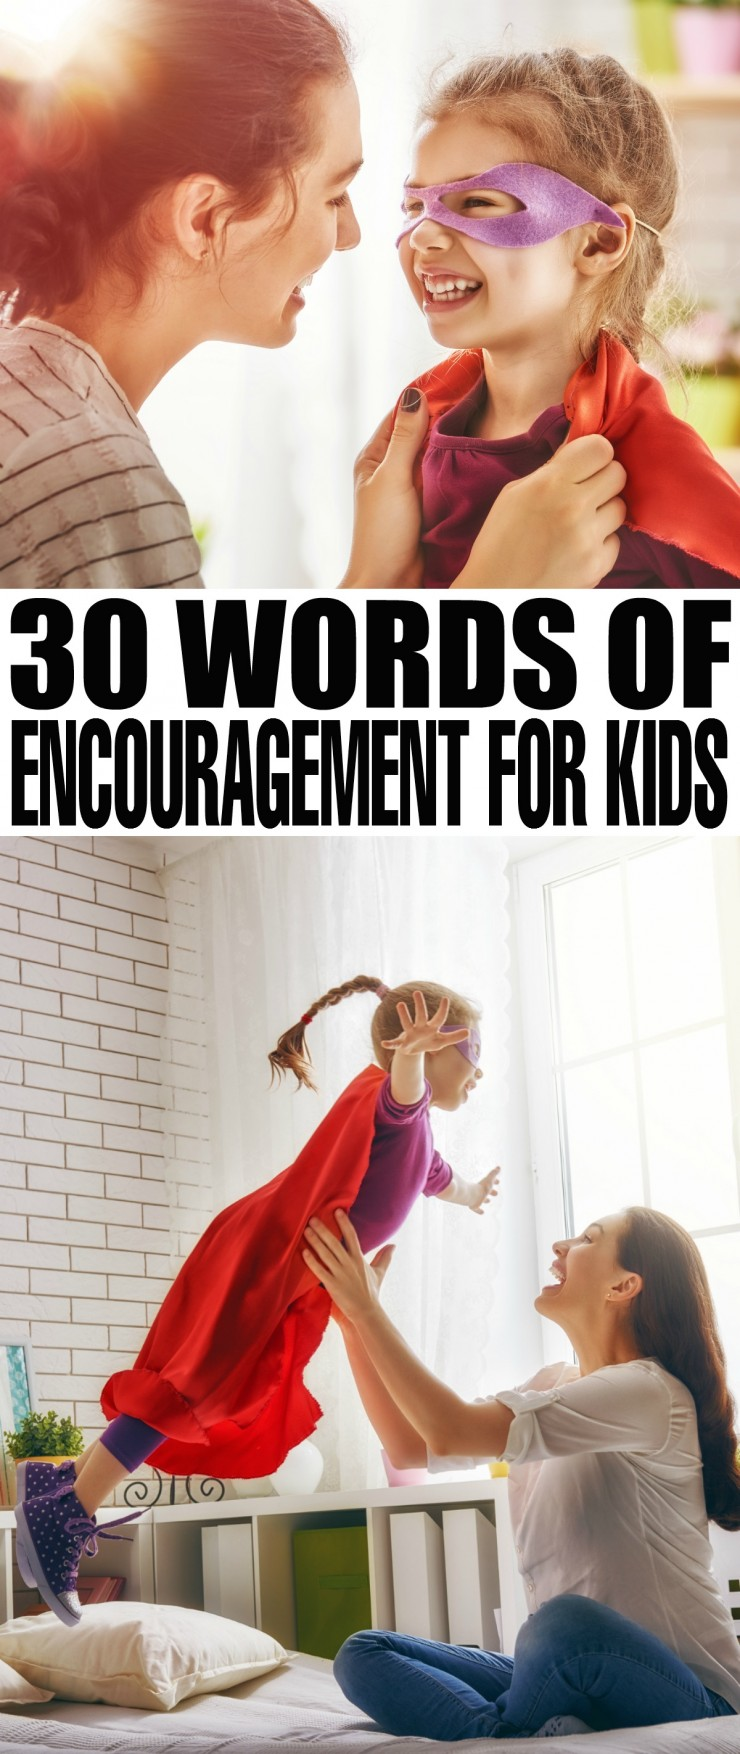 30 Words of Encouragement for Kids to help you parent positively and uplift your children as they grow into confident people.